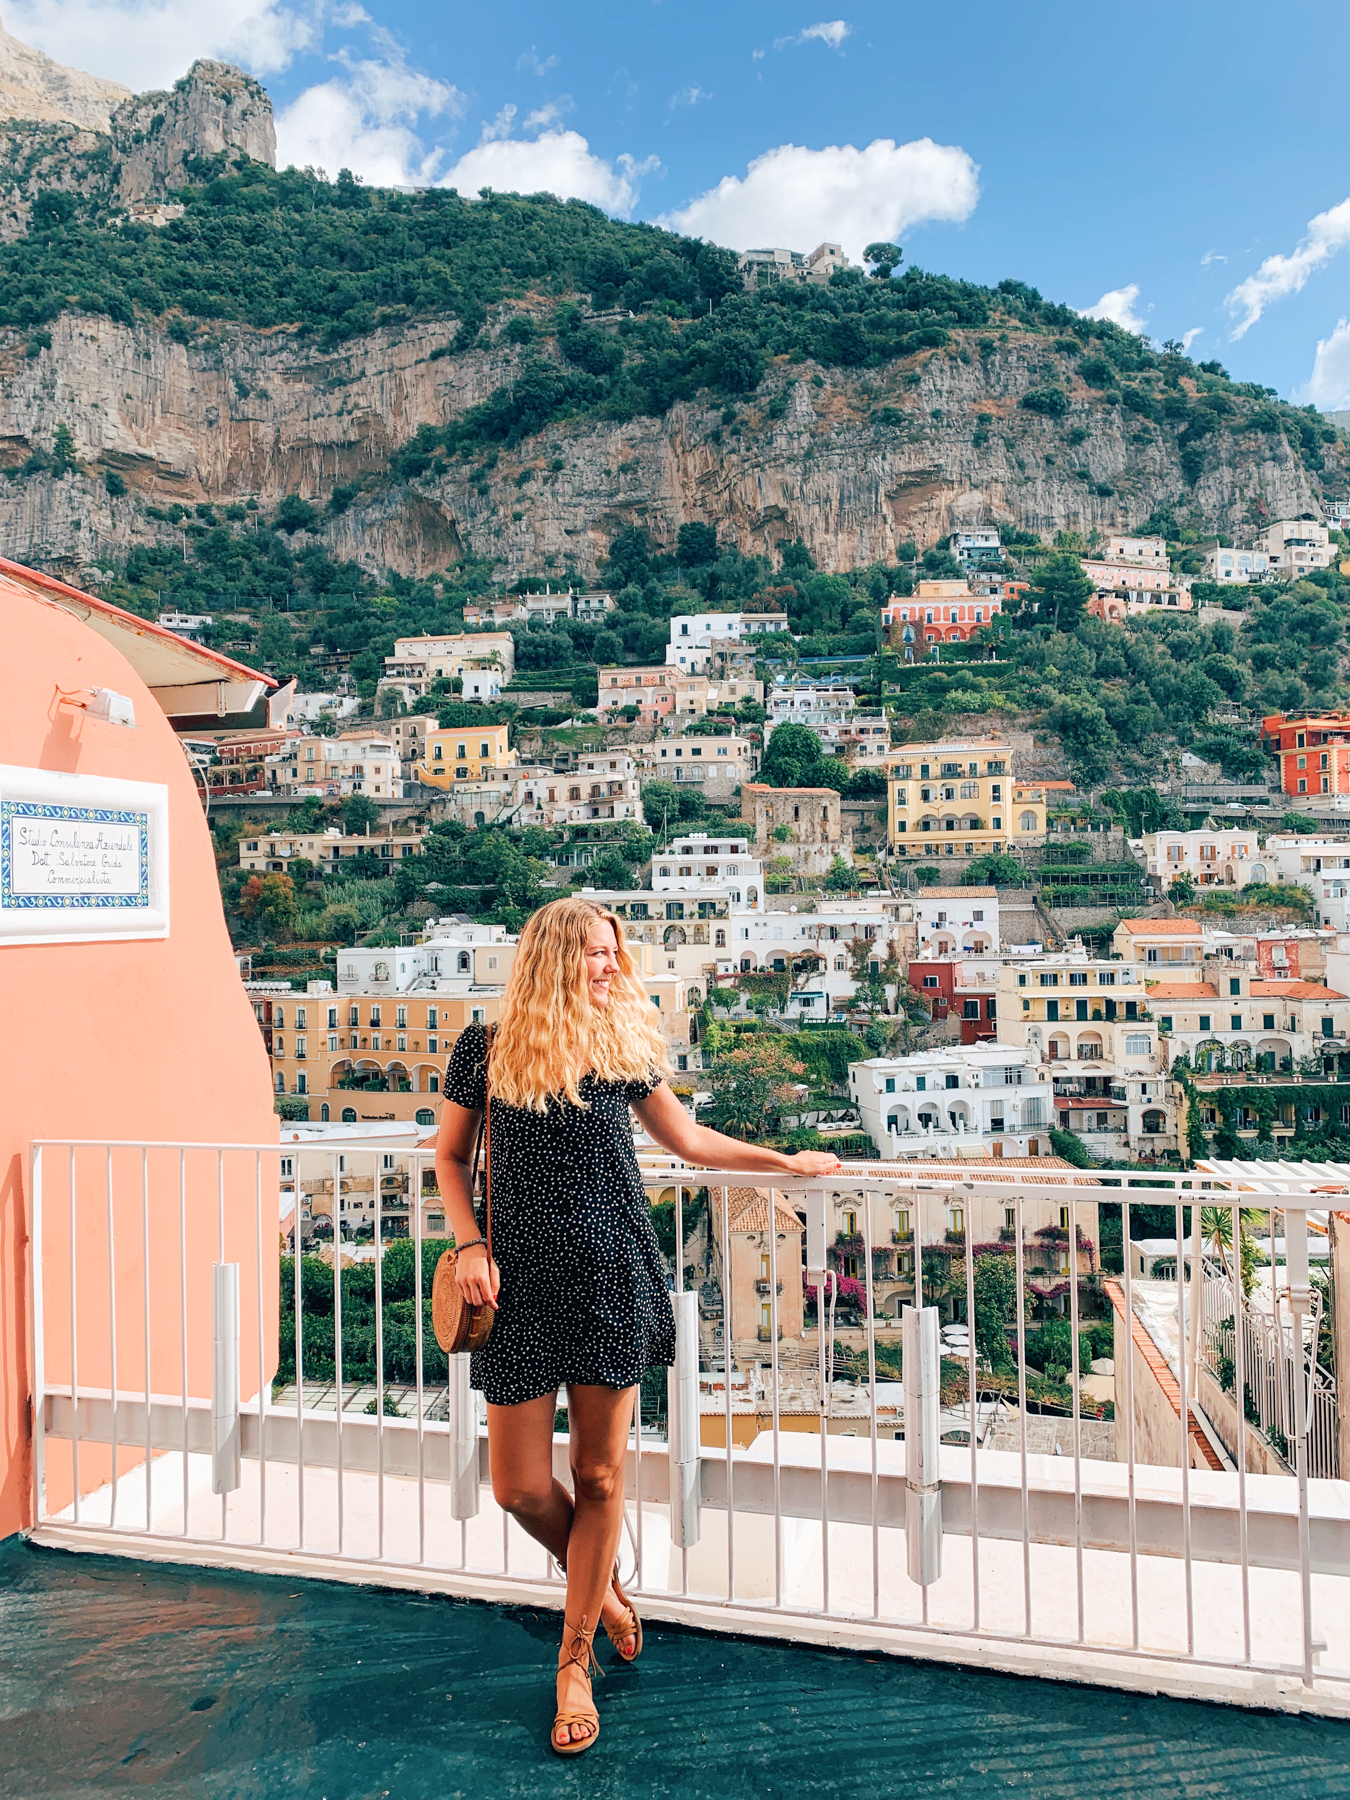 One of the many lookouts, close to Cafe Positano